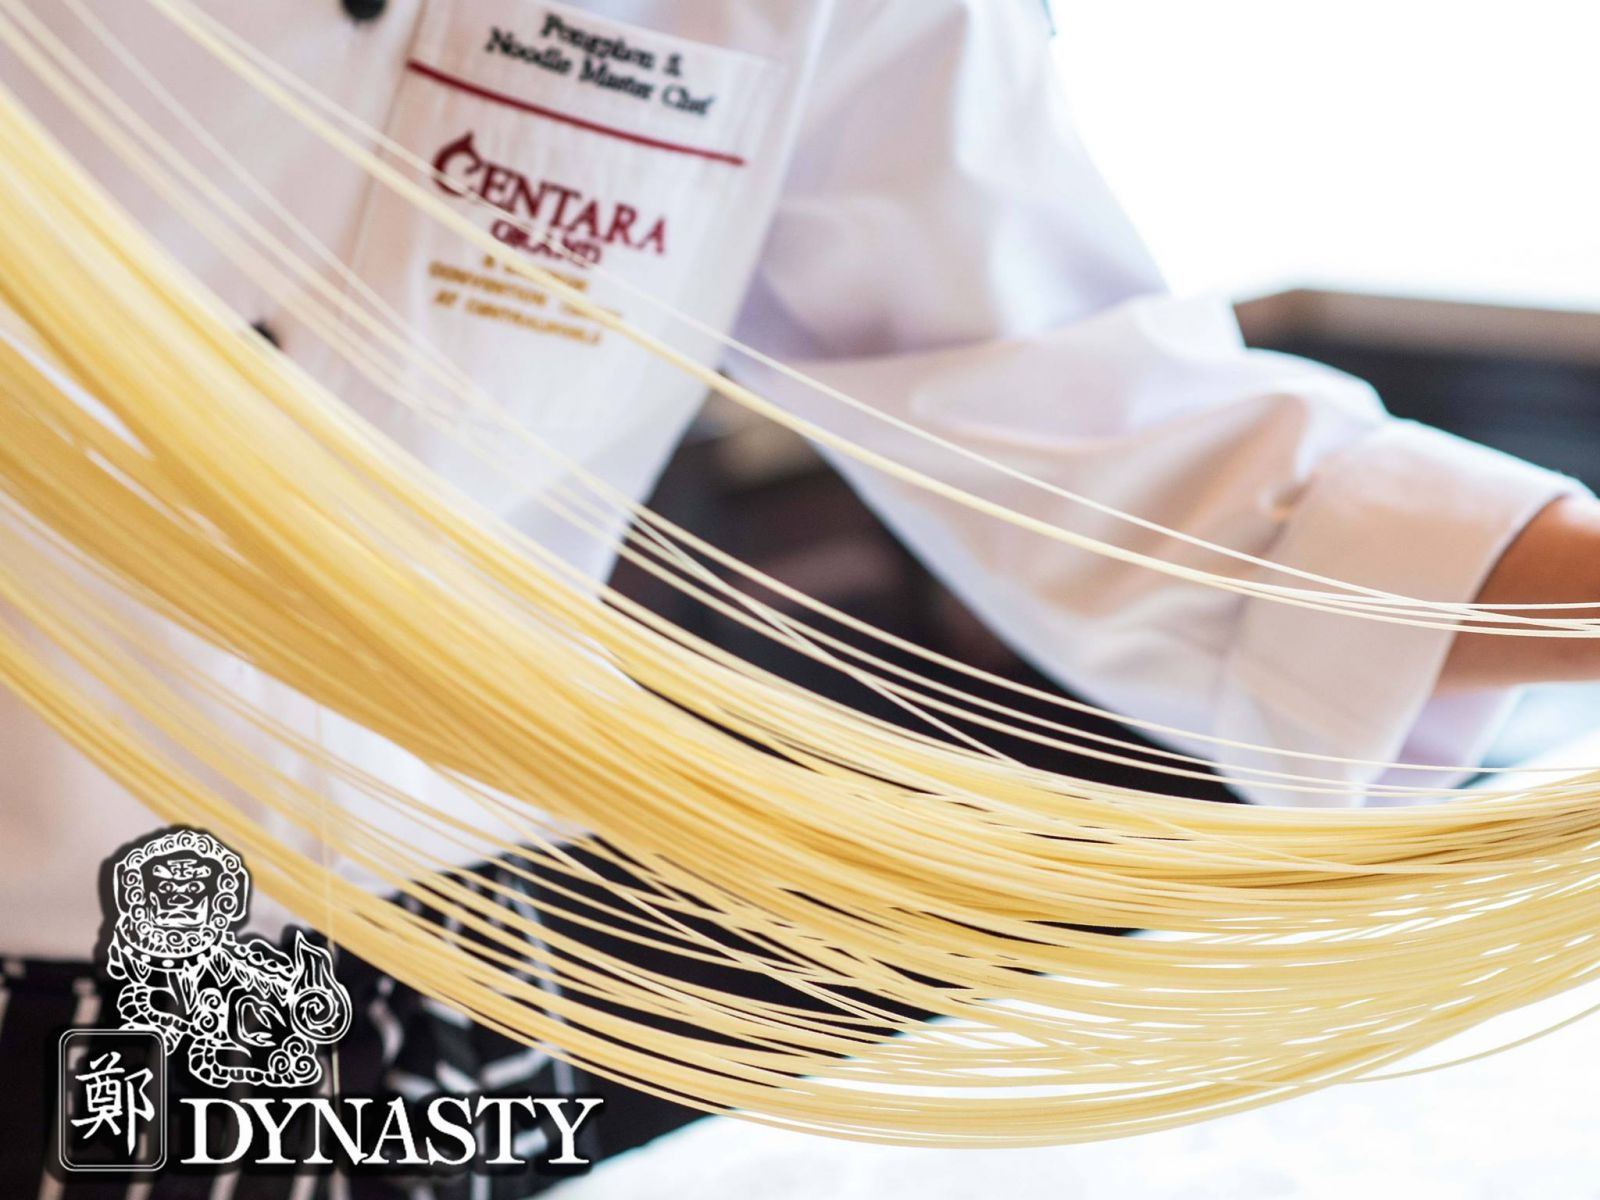 4 hand-made fresh noodle shops that you should try.